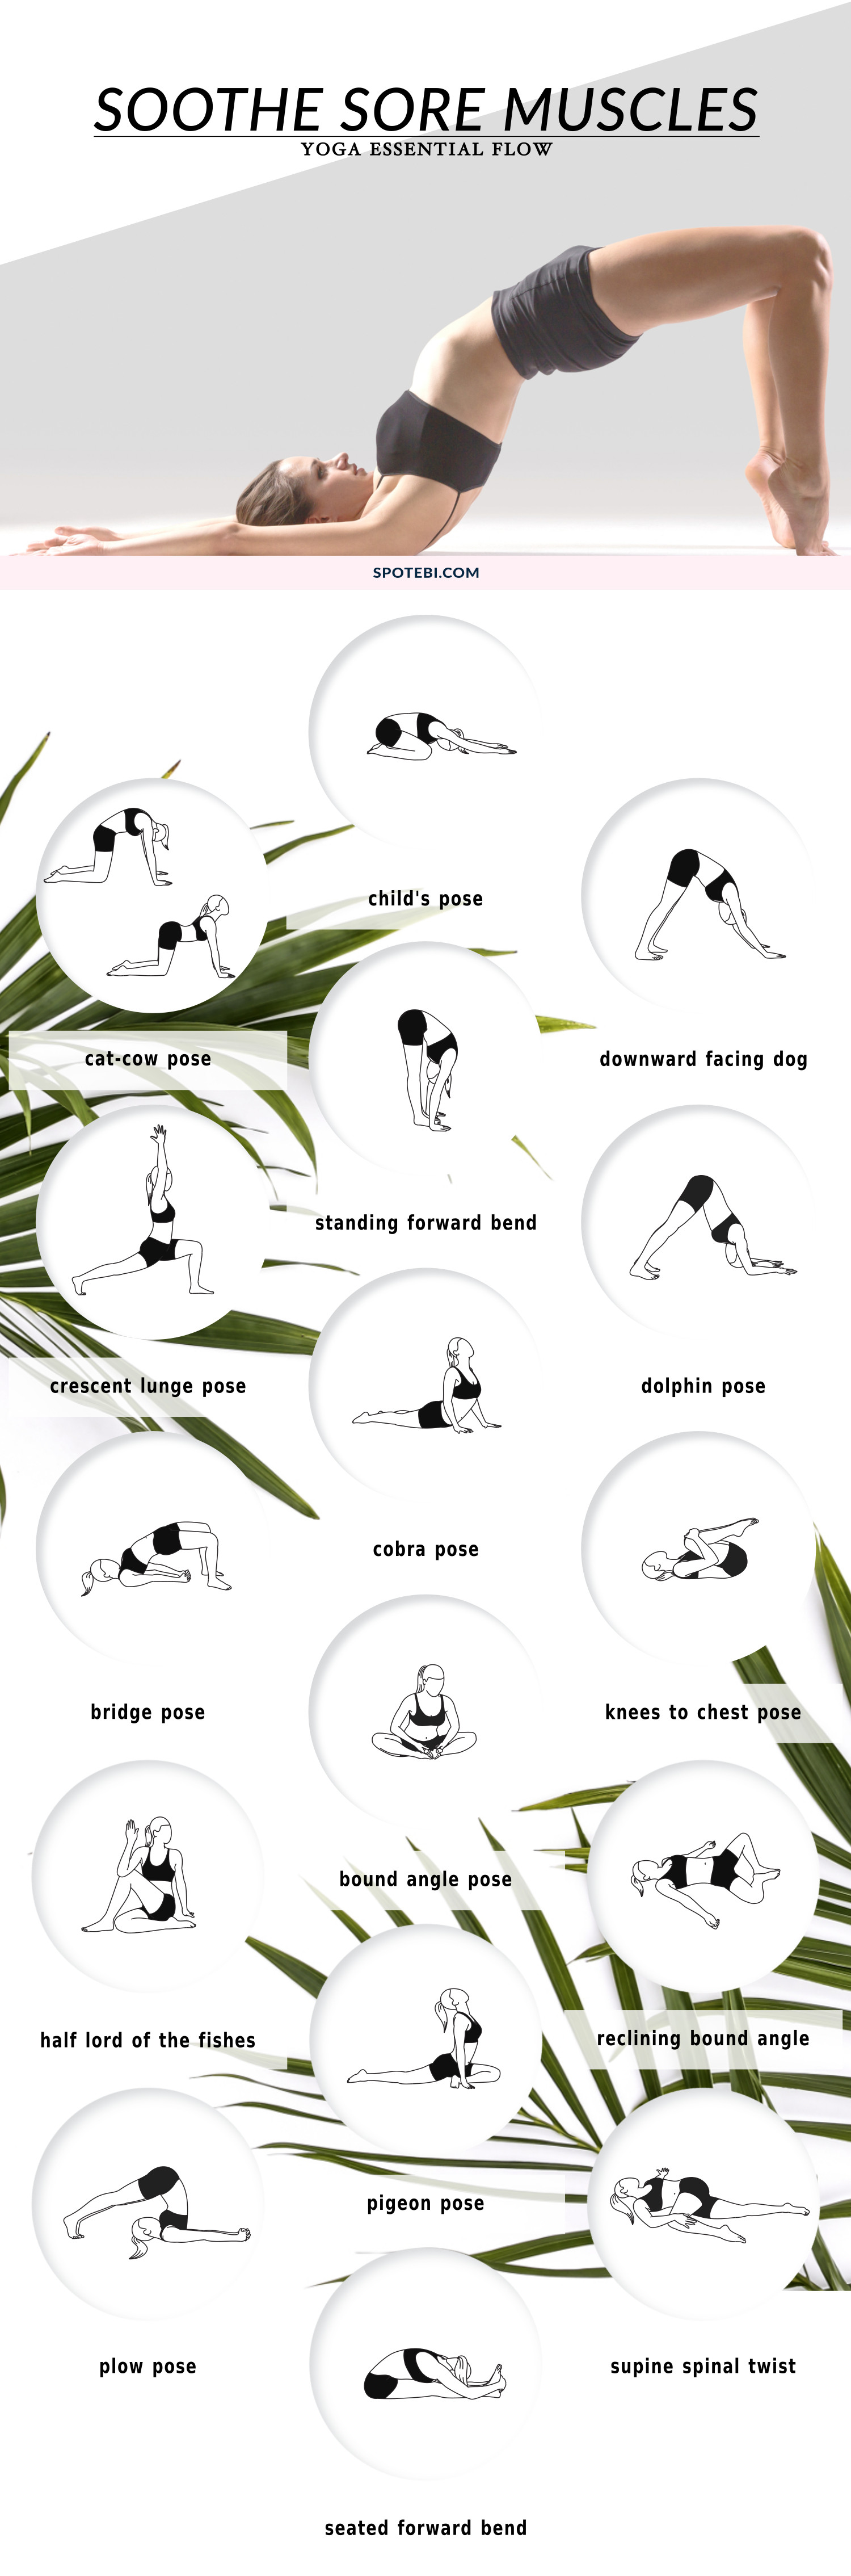 Having sore muscles after an intense workout is very common, especially for beginners who are just starting out. This gentle and invigorating yoga sequence will help you ease post-workout muscle soreness and increase your mobility and flexibility for future workouts. https://www.spotebi.com/yoga-sequences/soothe-sore-muscles-flow/